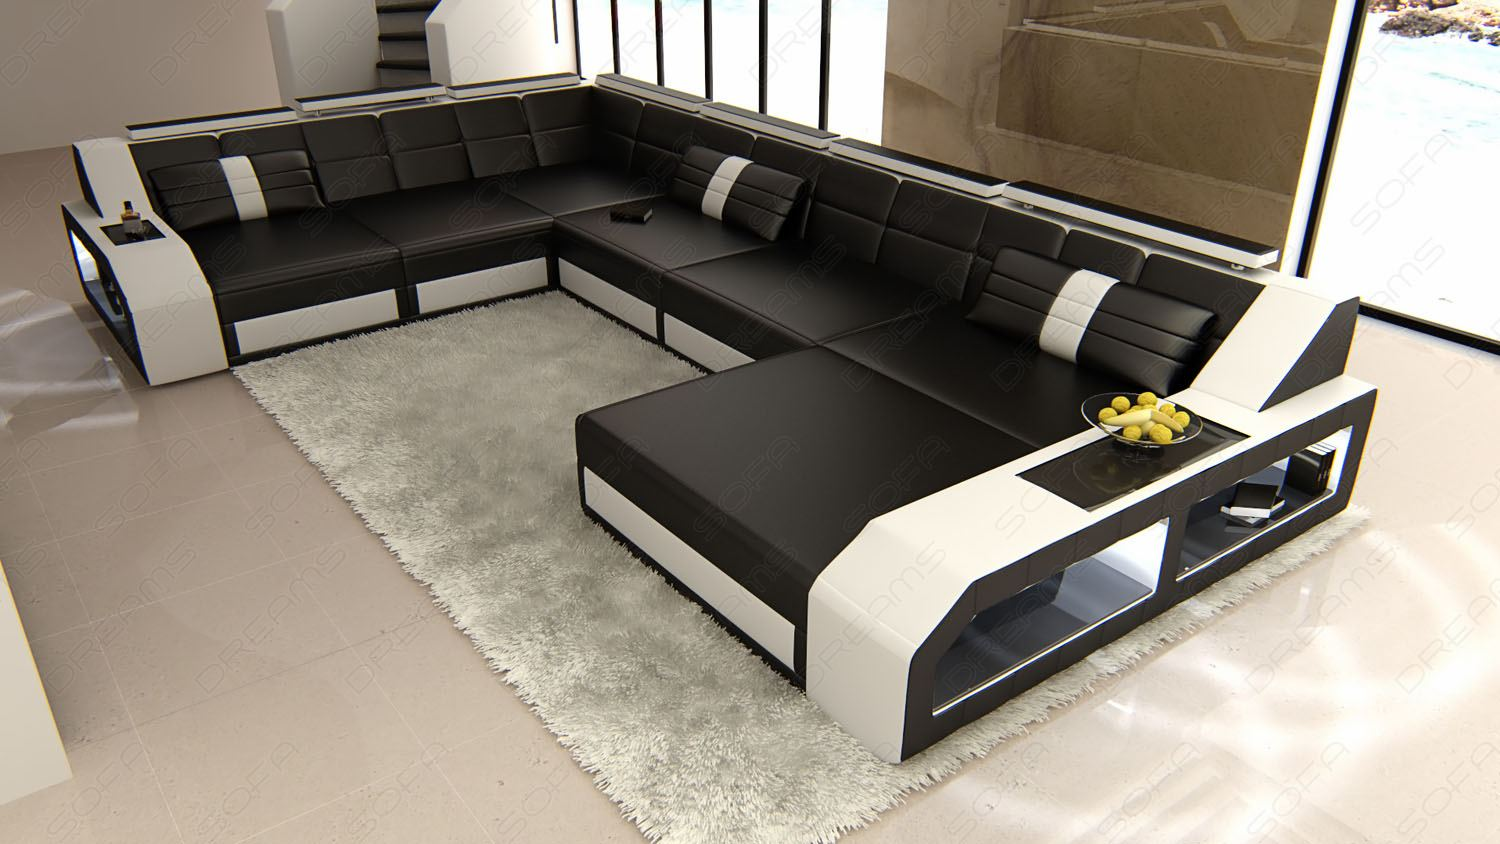 design sectional sofa matera xxl with led lights black white ebay. Black Bedroom Furniture Sets. Home Design Ideas